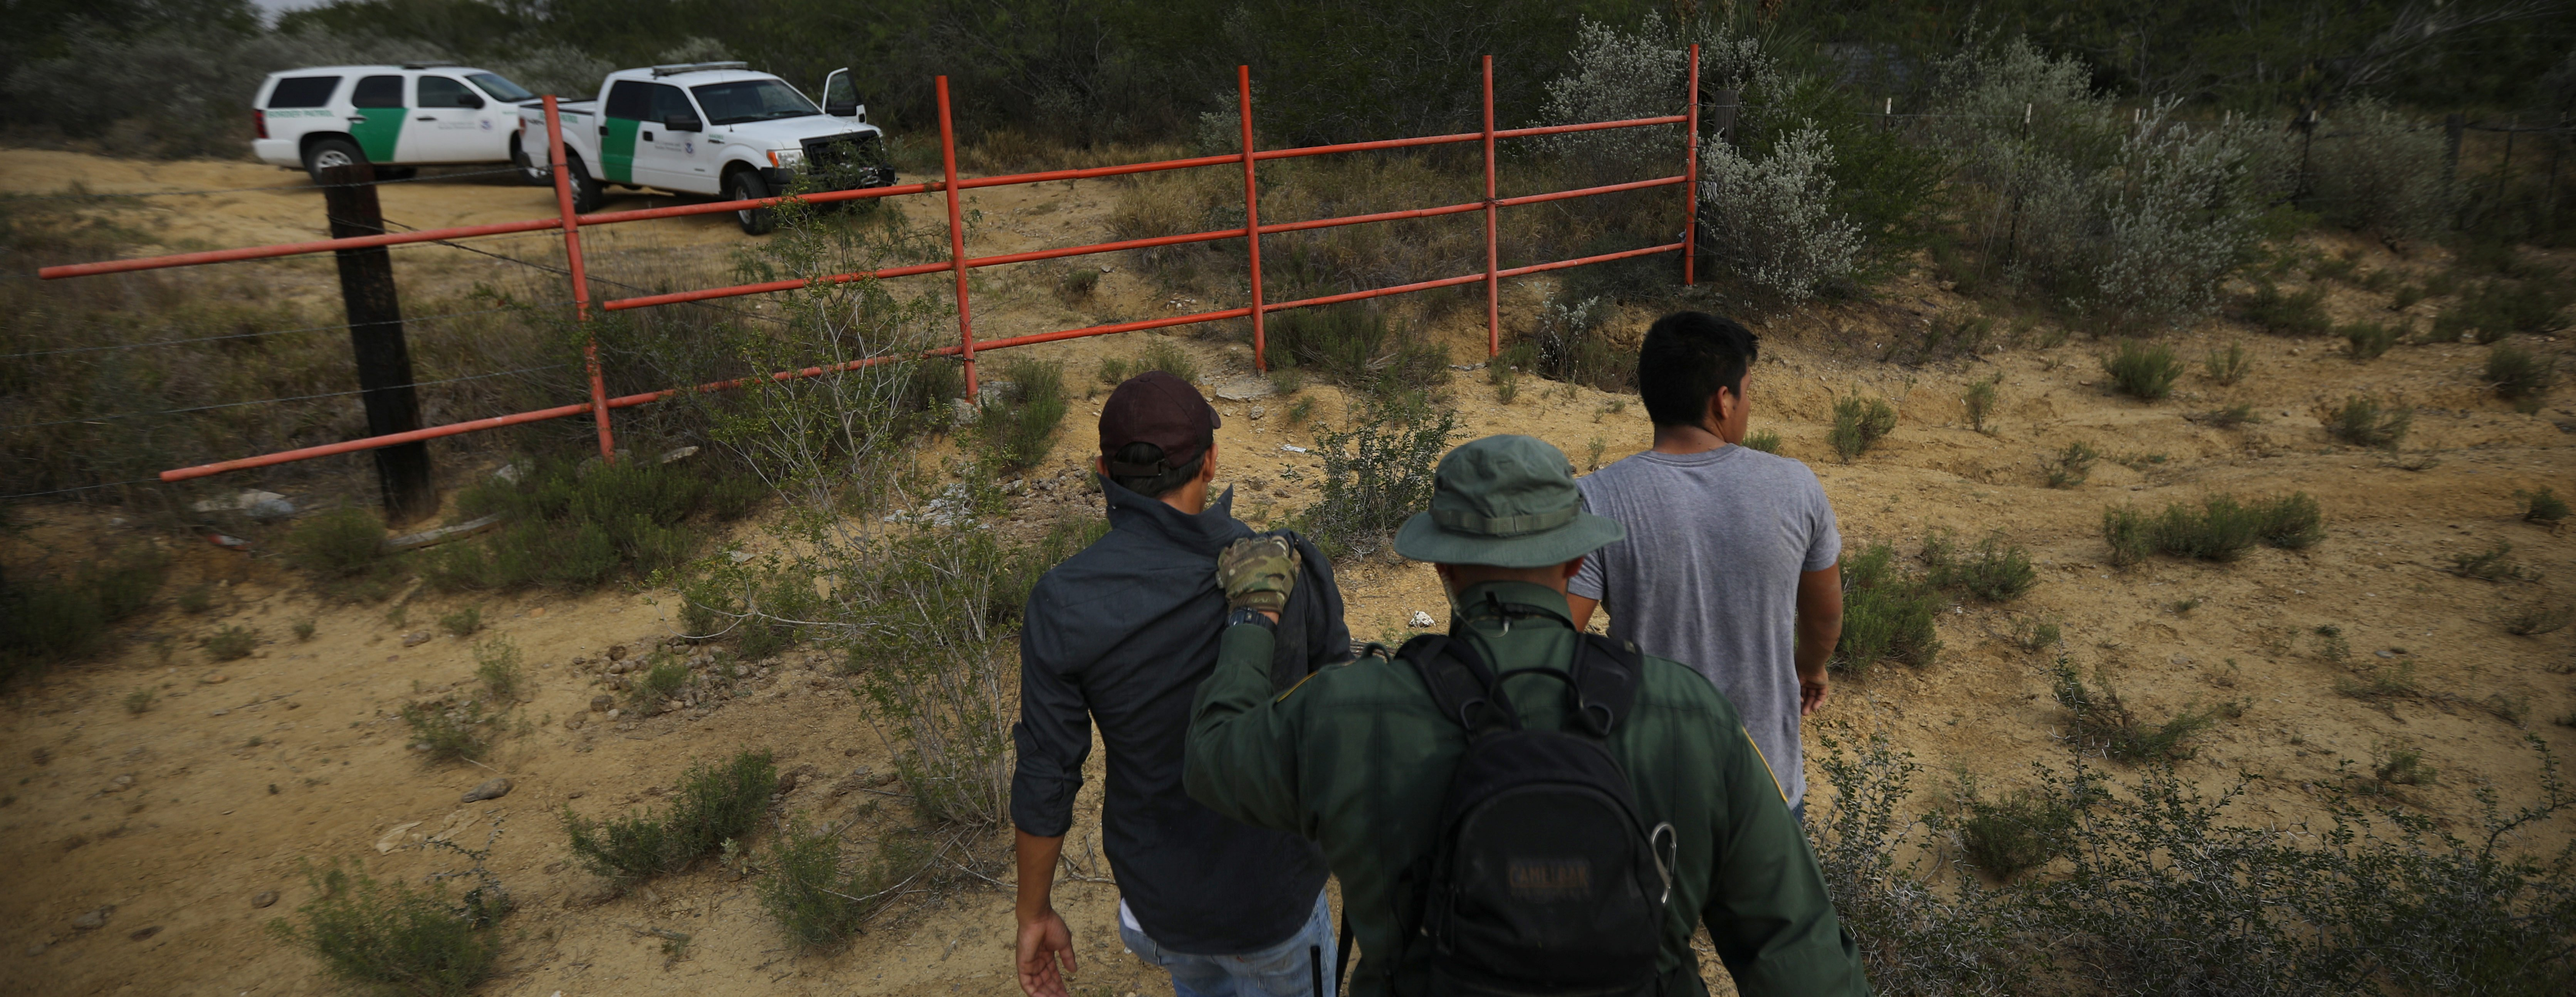 Improved security has made it harder than ever to illegally cross into the U.S. from Mexico, and Border Patrol agents are catching a higher percentage of those who try, according to a new report from